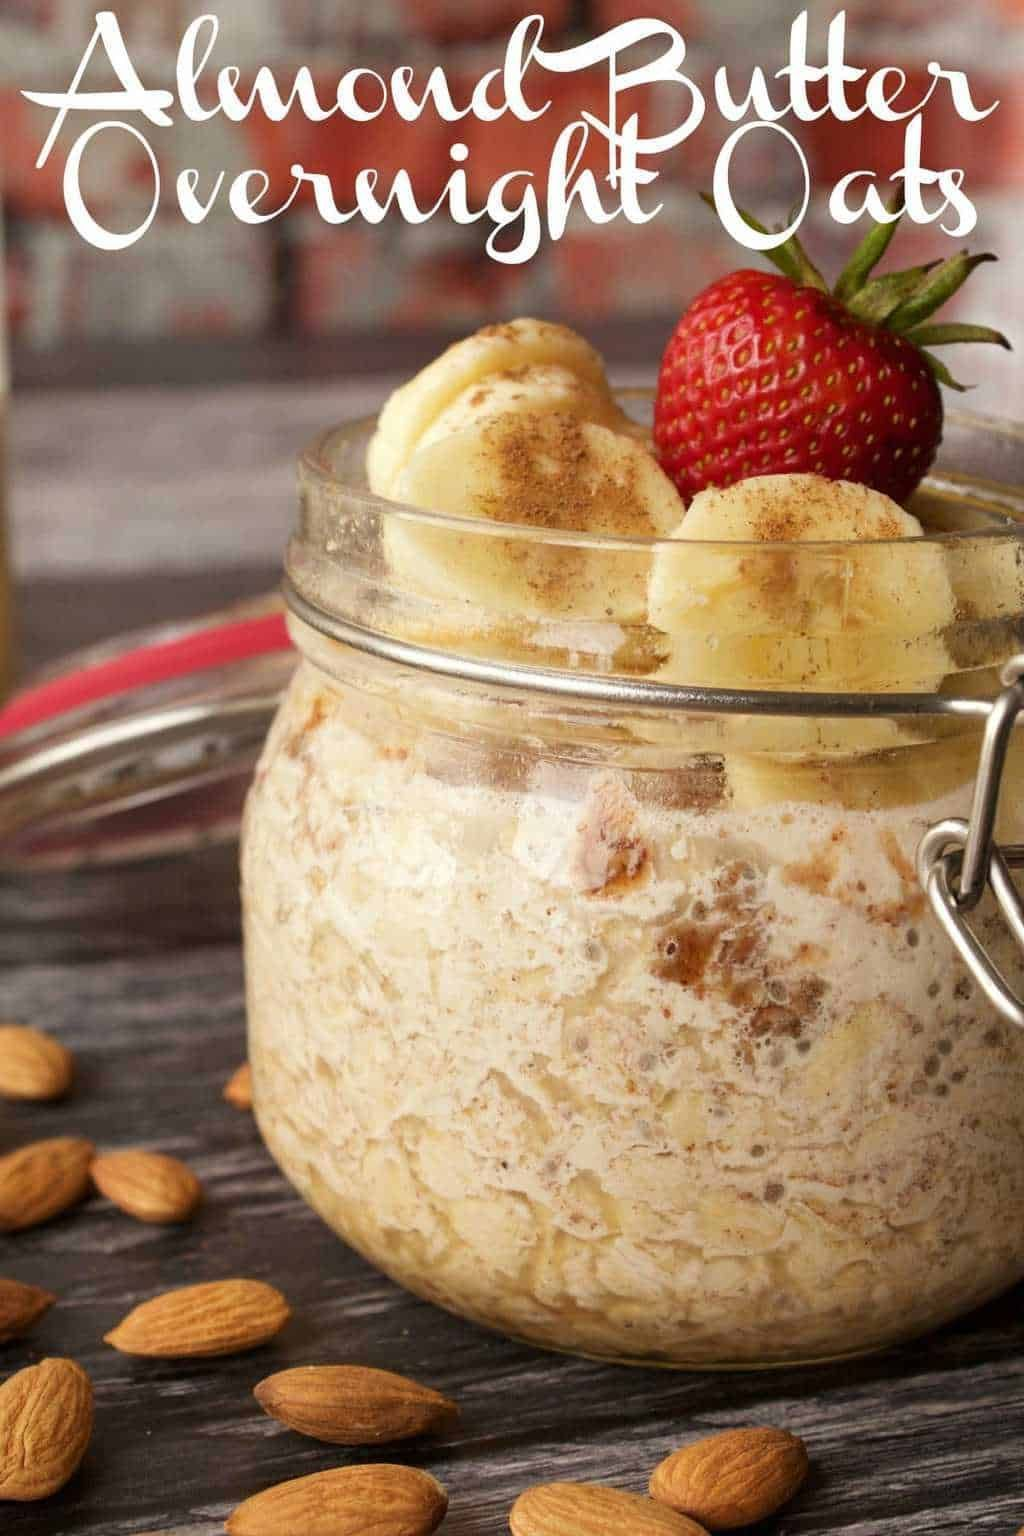 easy vegan overnight oats with chia seeds and almond butter! Simple recipe for a healthy and nutritious breakfast. Gluten-Free. |